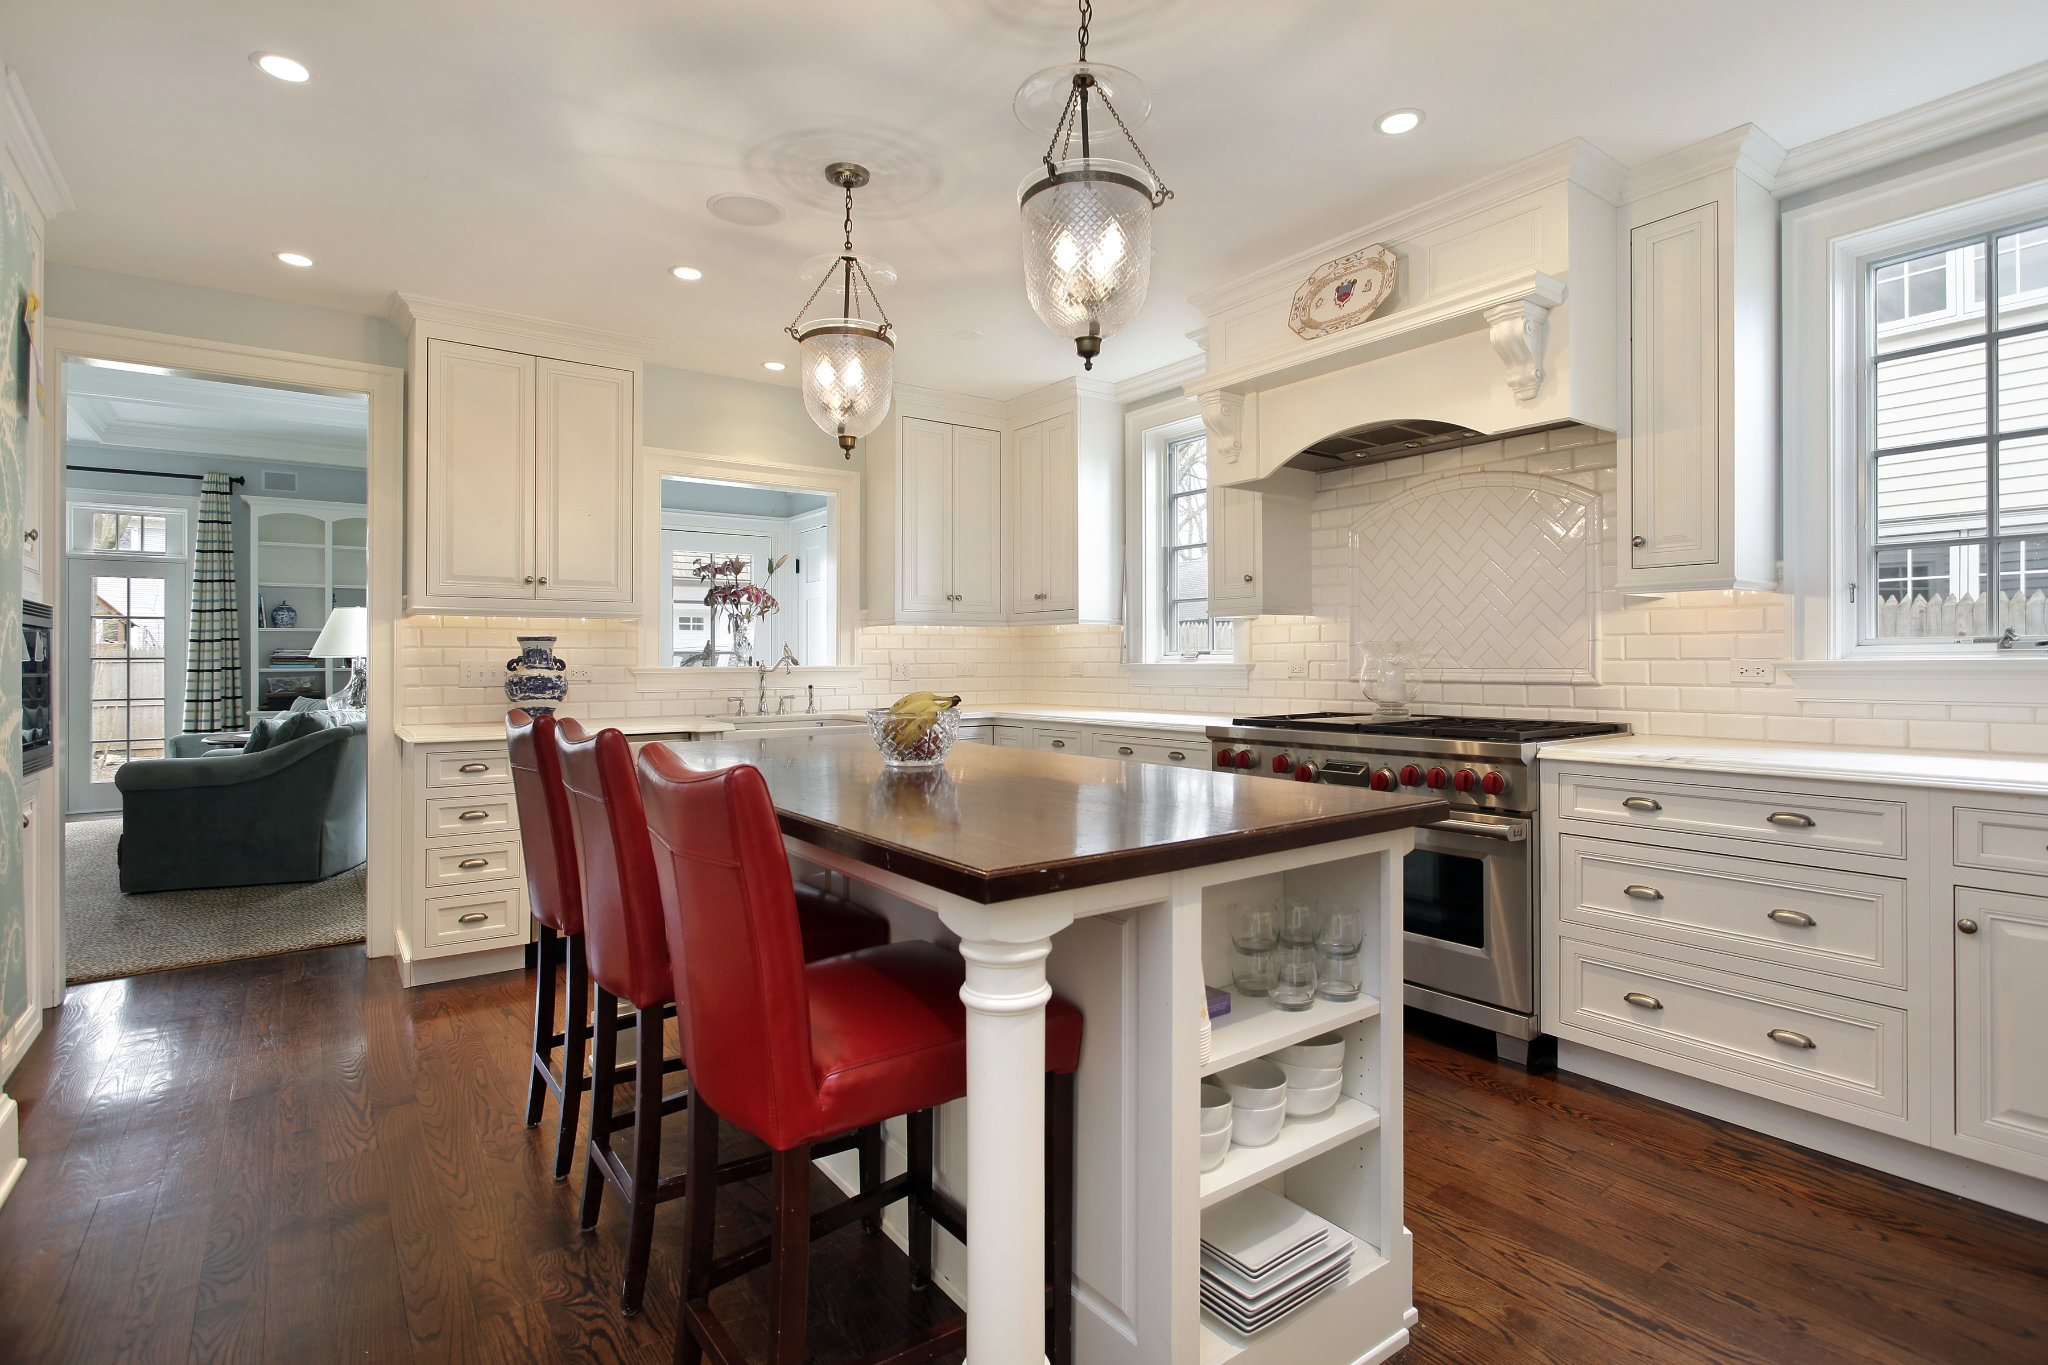 Kitchen with wood counter island